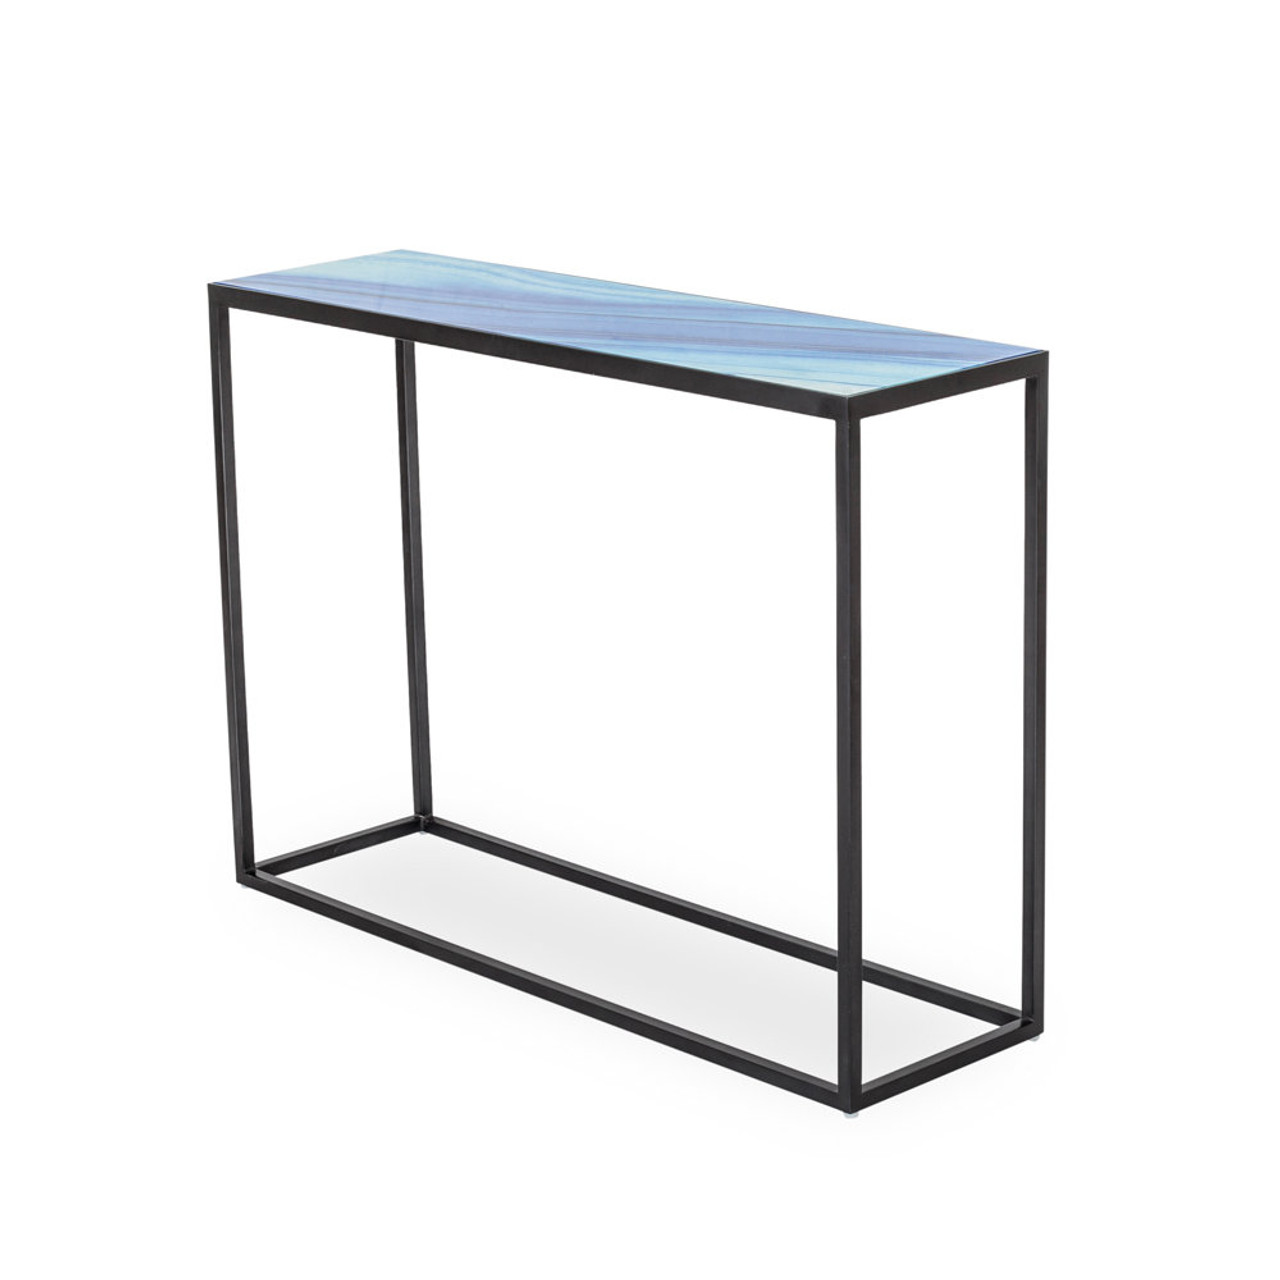 Glass console table with shelf - Seaside Glass Console Table